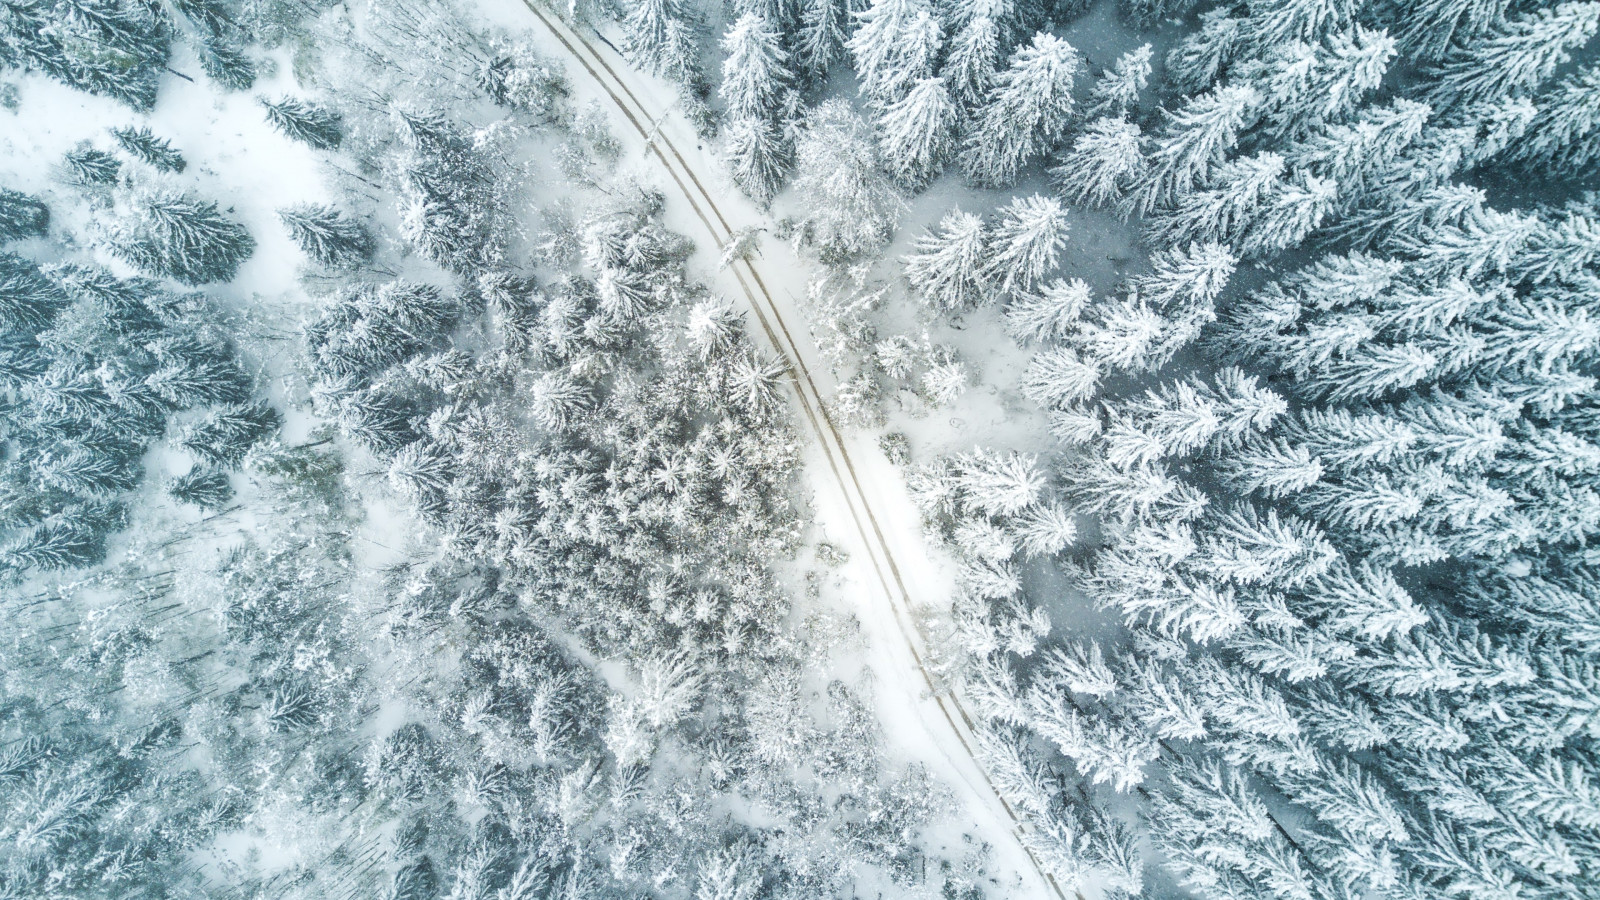 Aerial Winter landscape wallpaper 1600x900